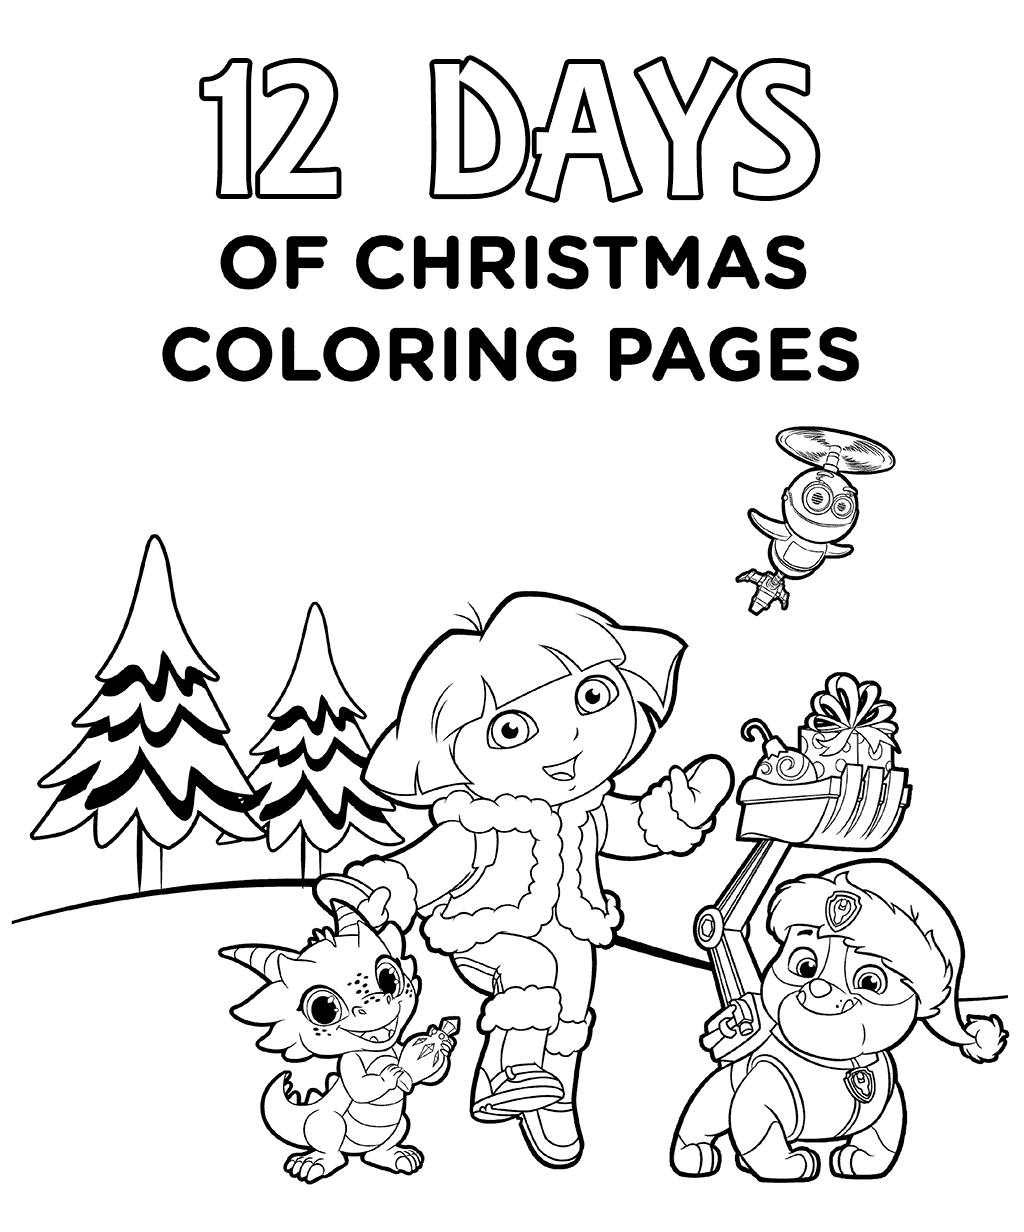 12 Days Of Christmas Coloring Pages Printable At Getdrawings Com